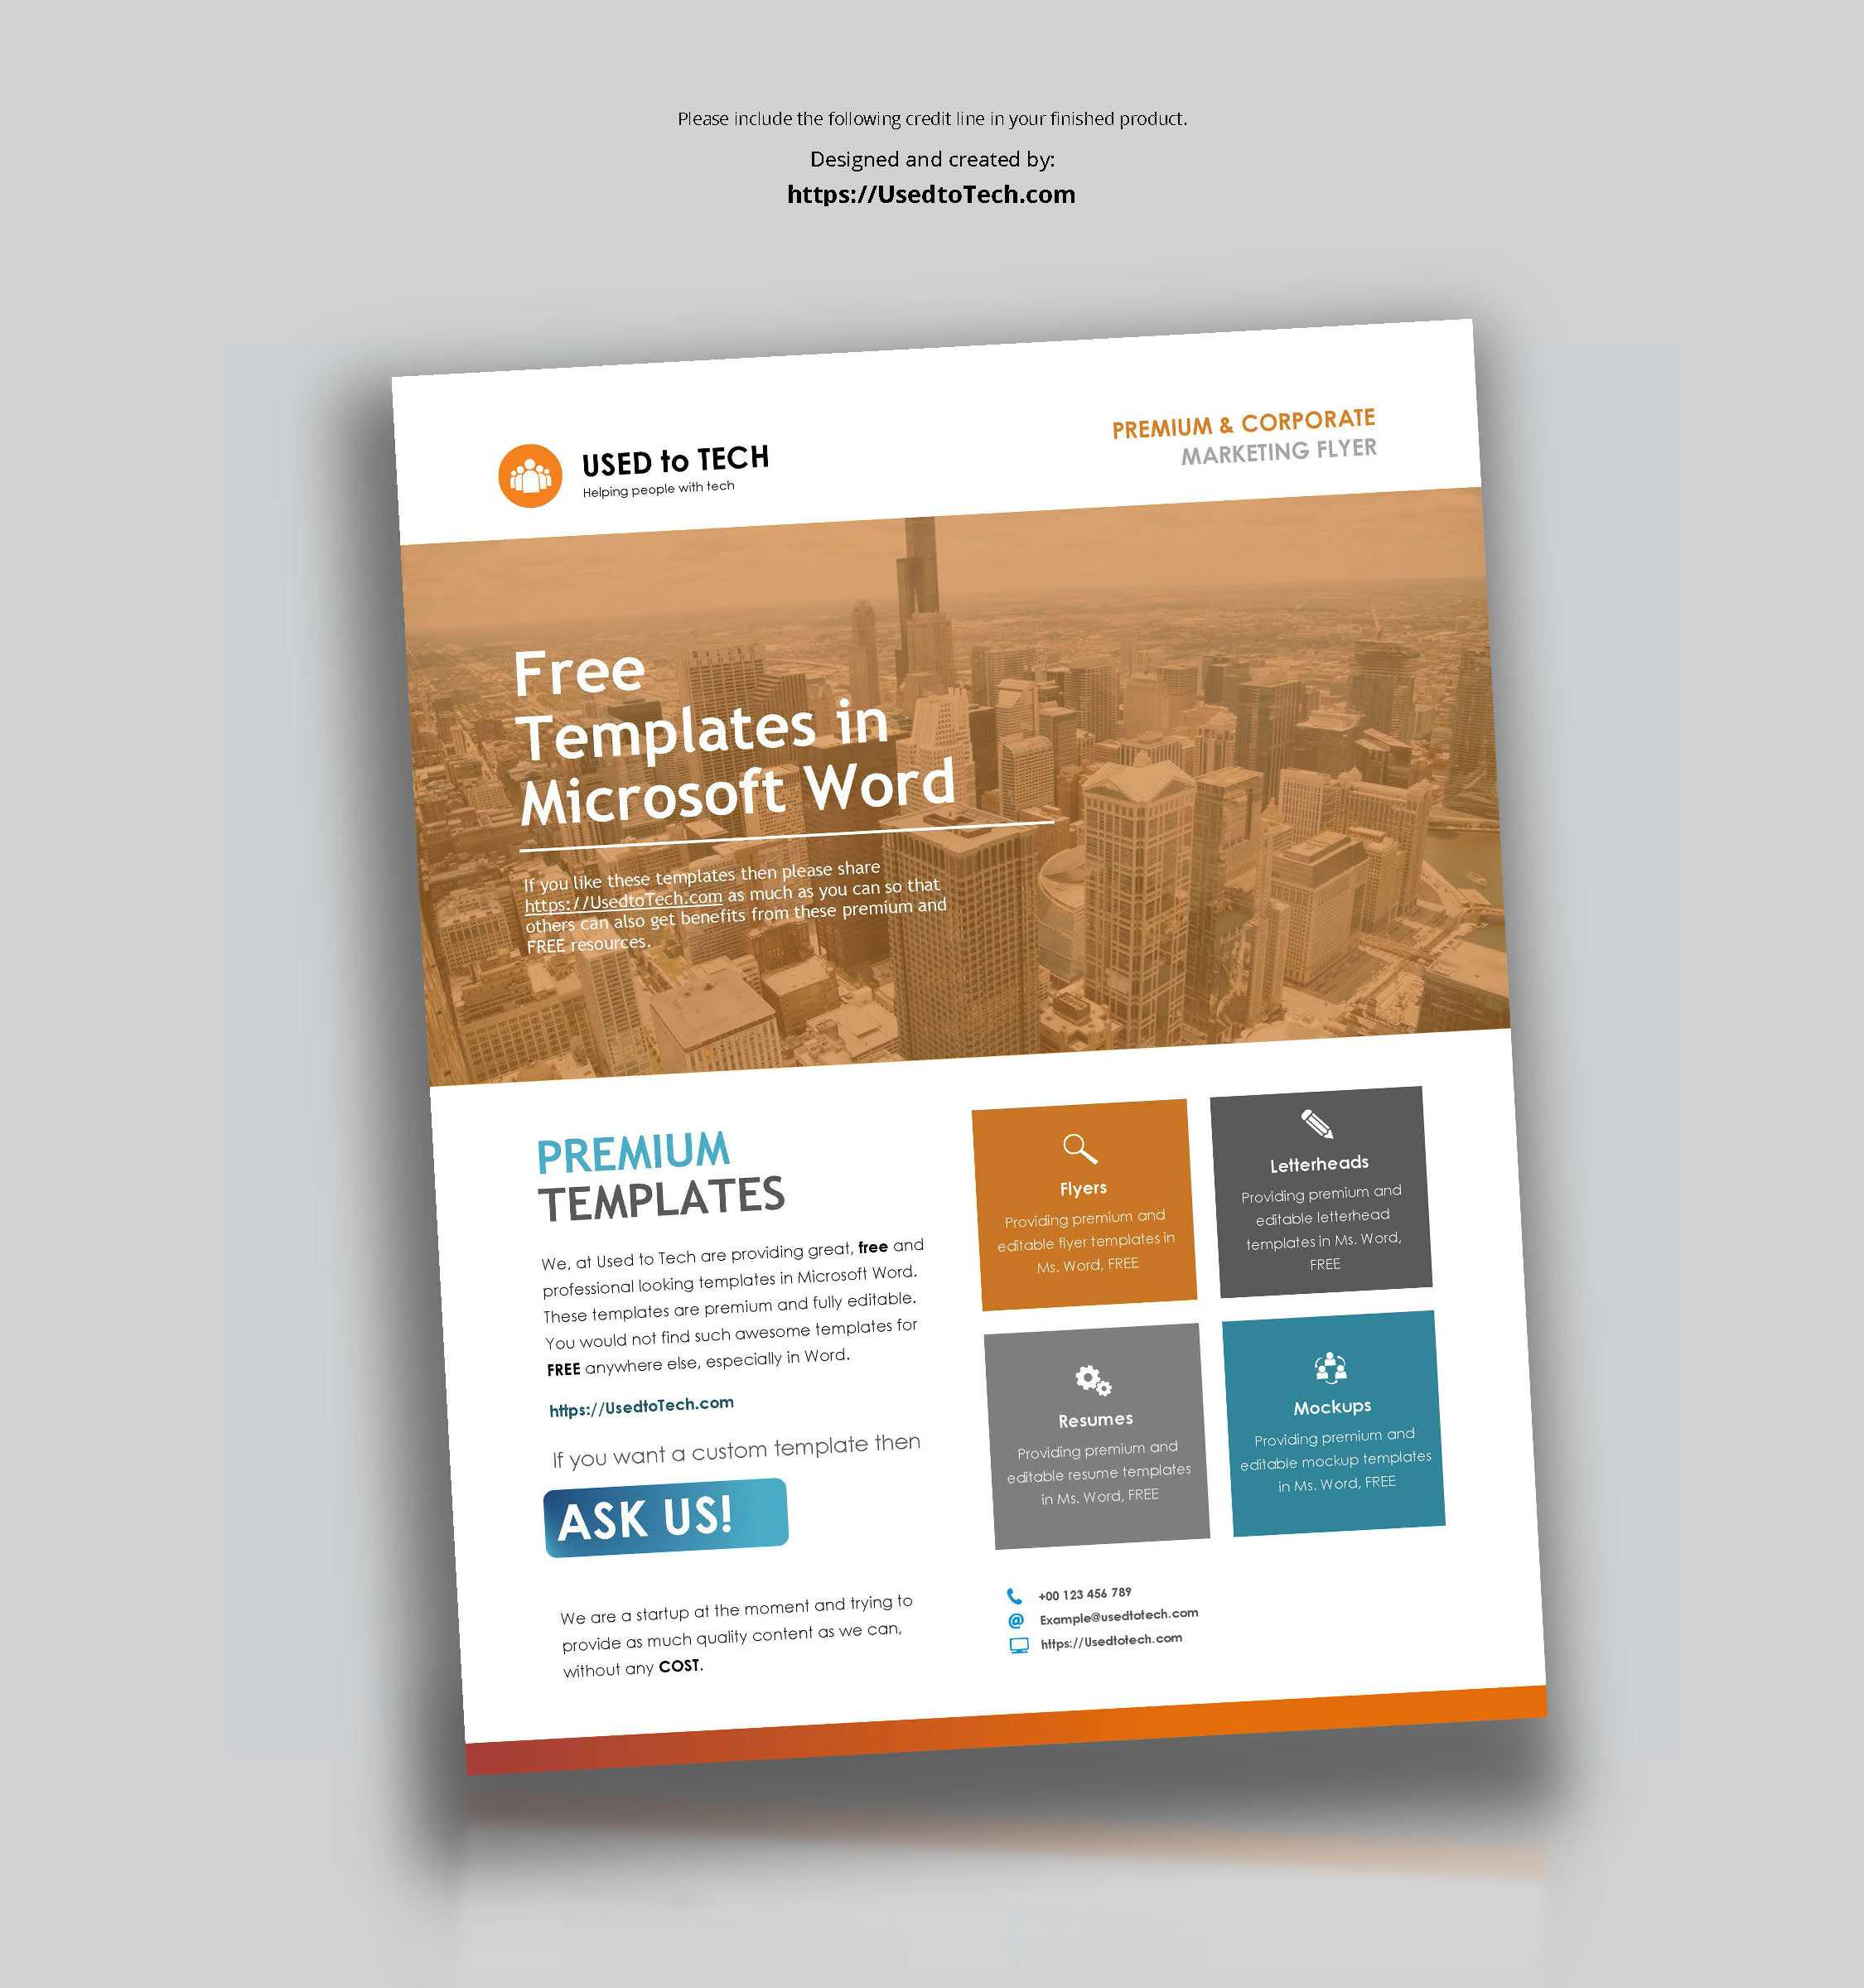 Corporate Flyer Design In Microsoft Word Free - Used To Tech Within Templates For Flyers In Word